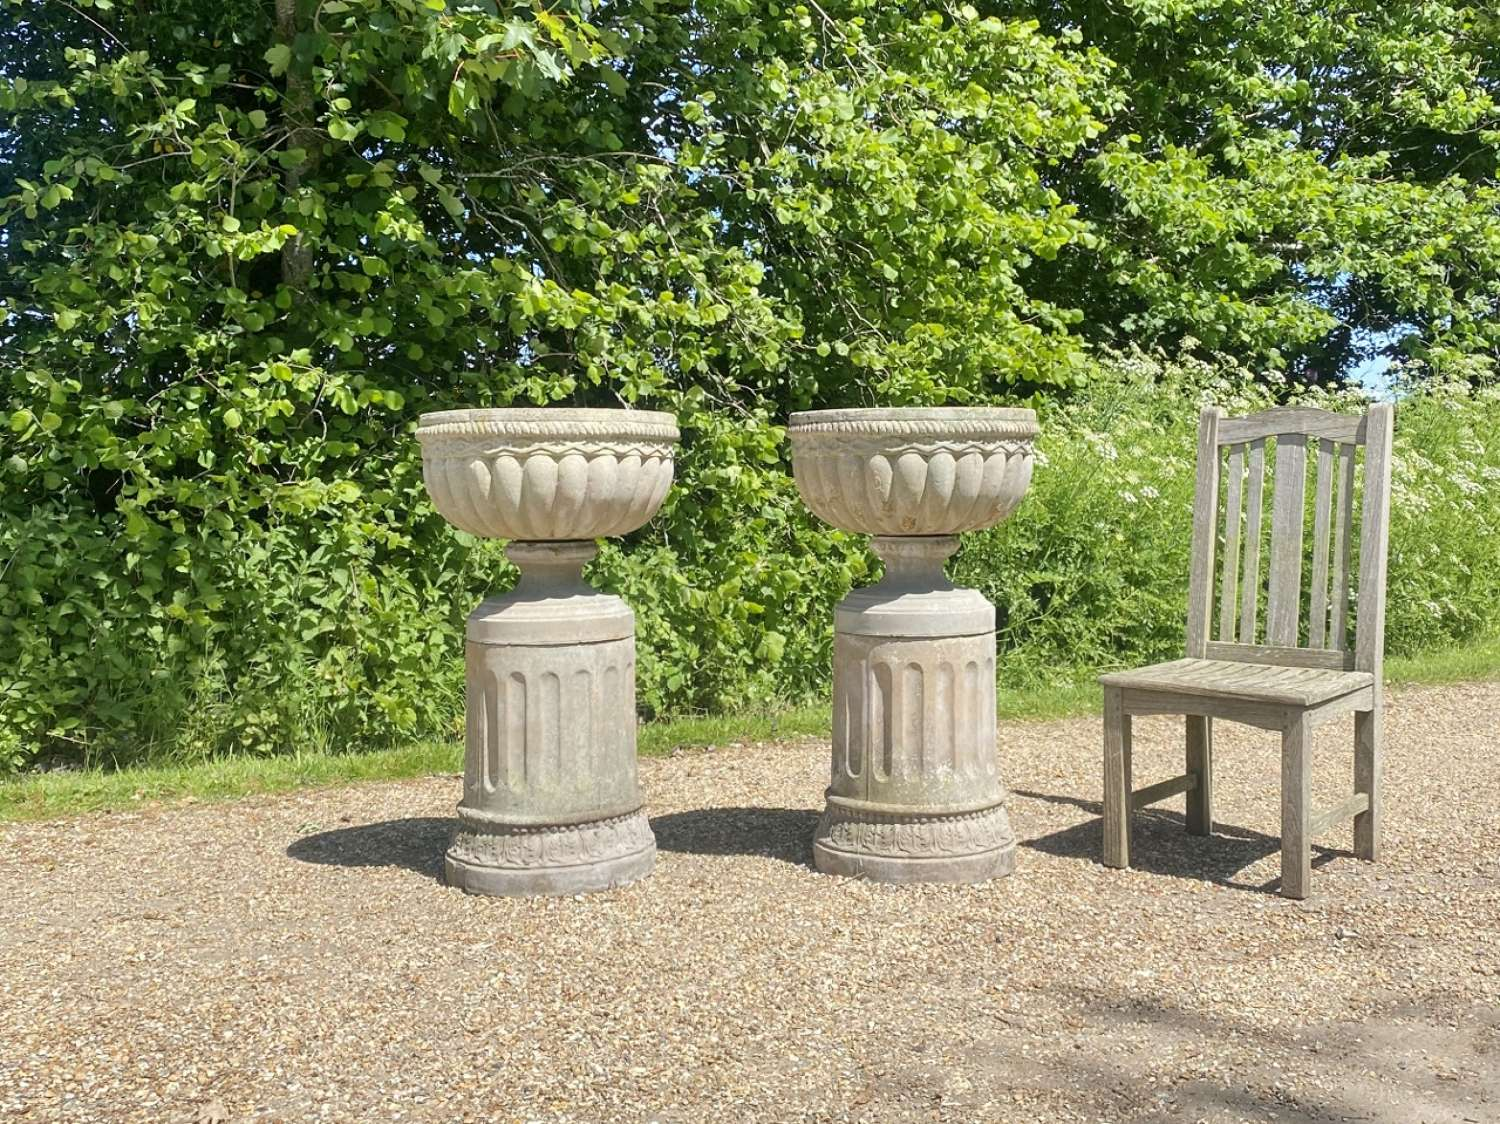 Pair of Bowl Urns with Pedestals